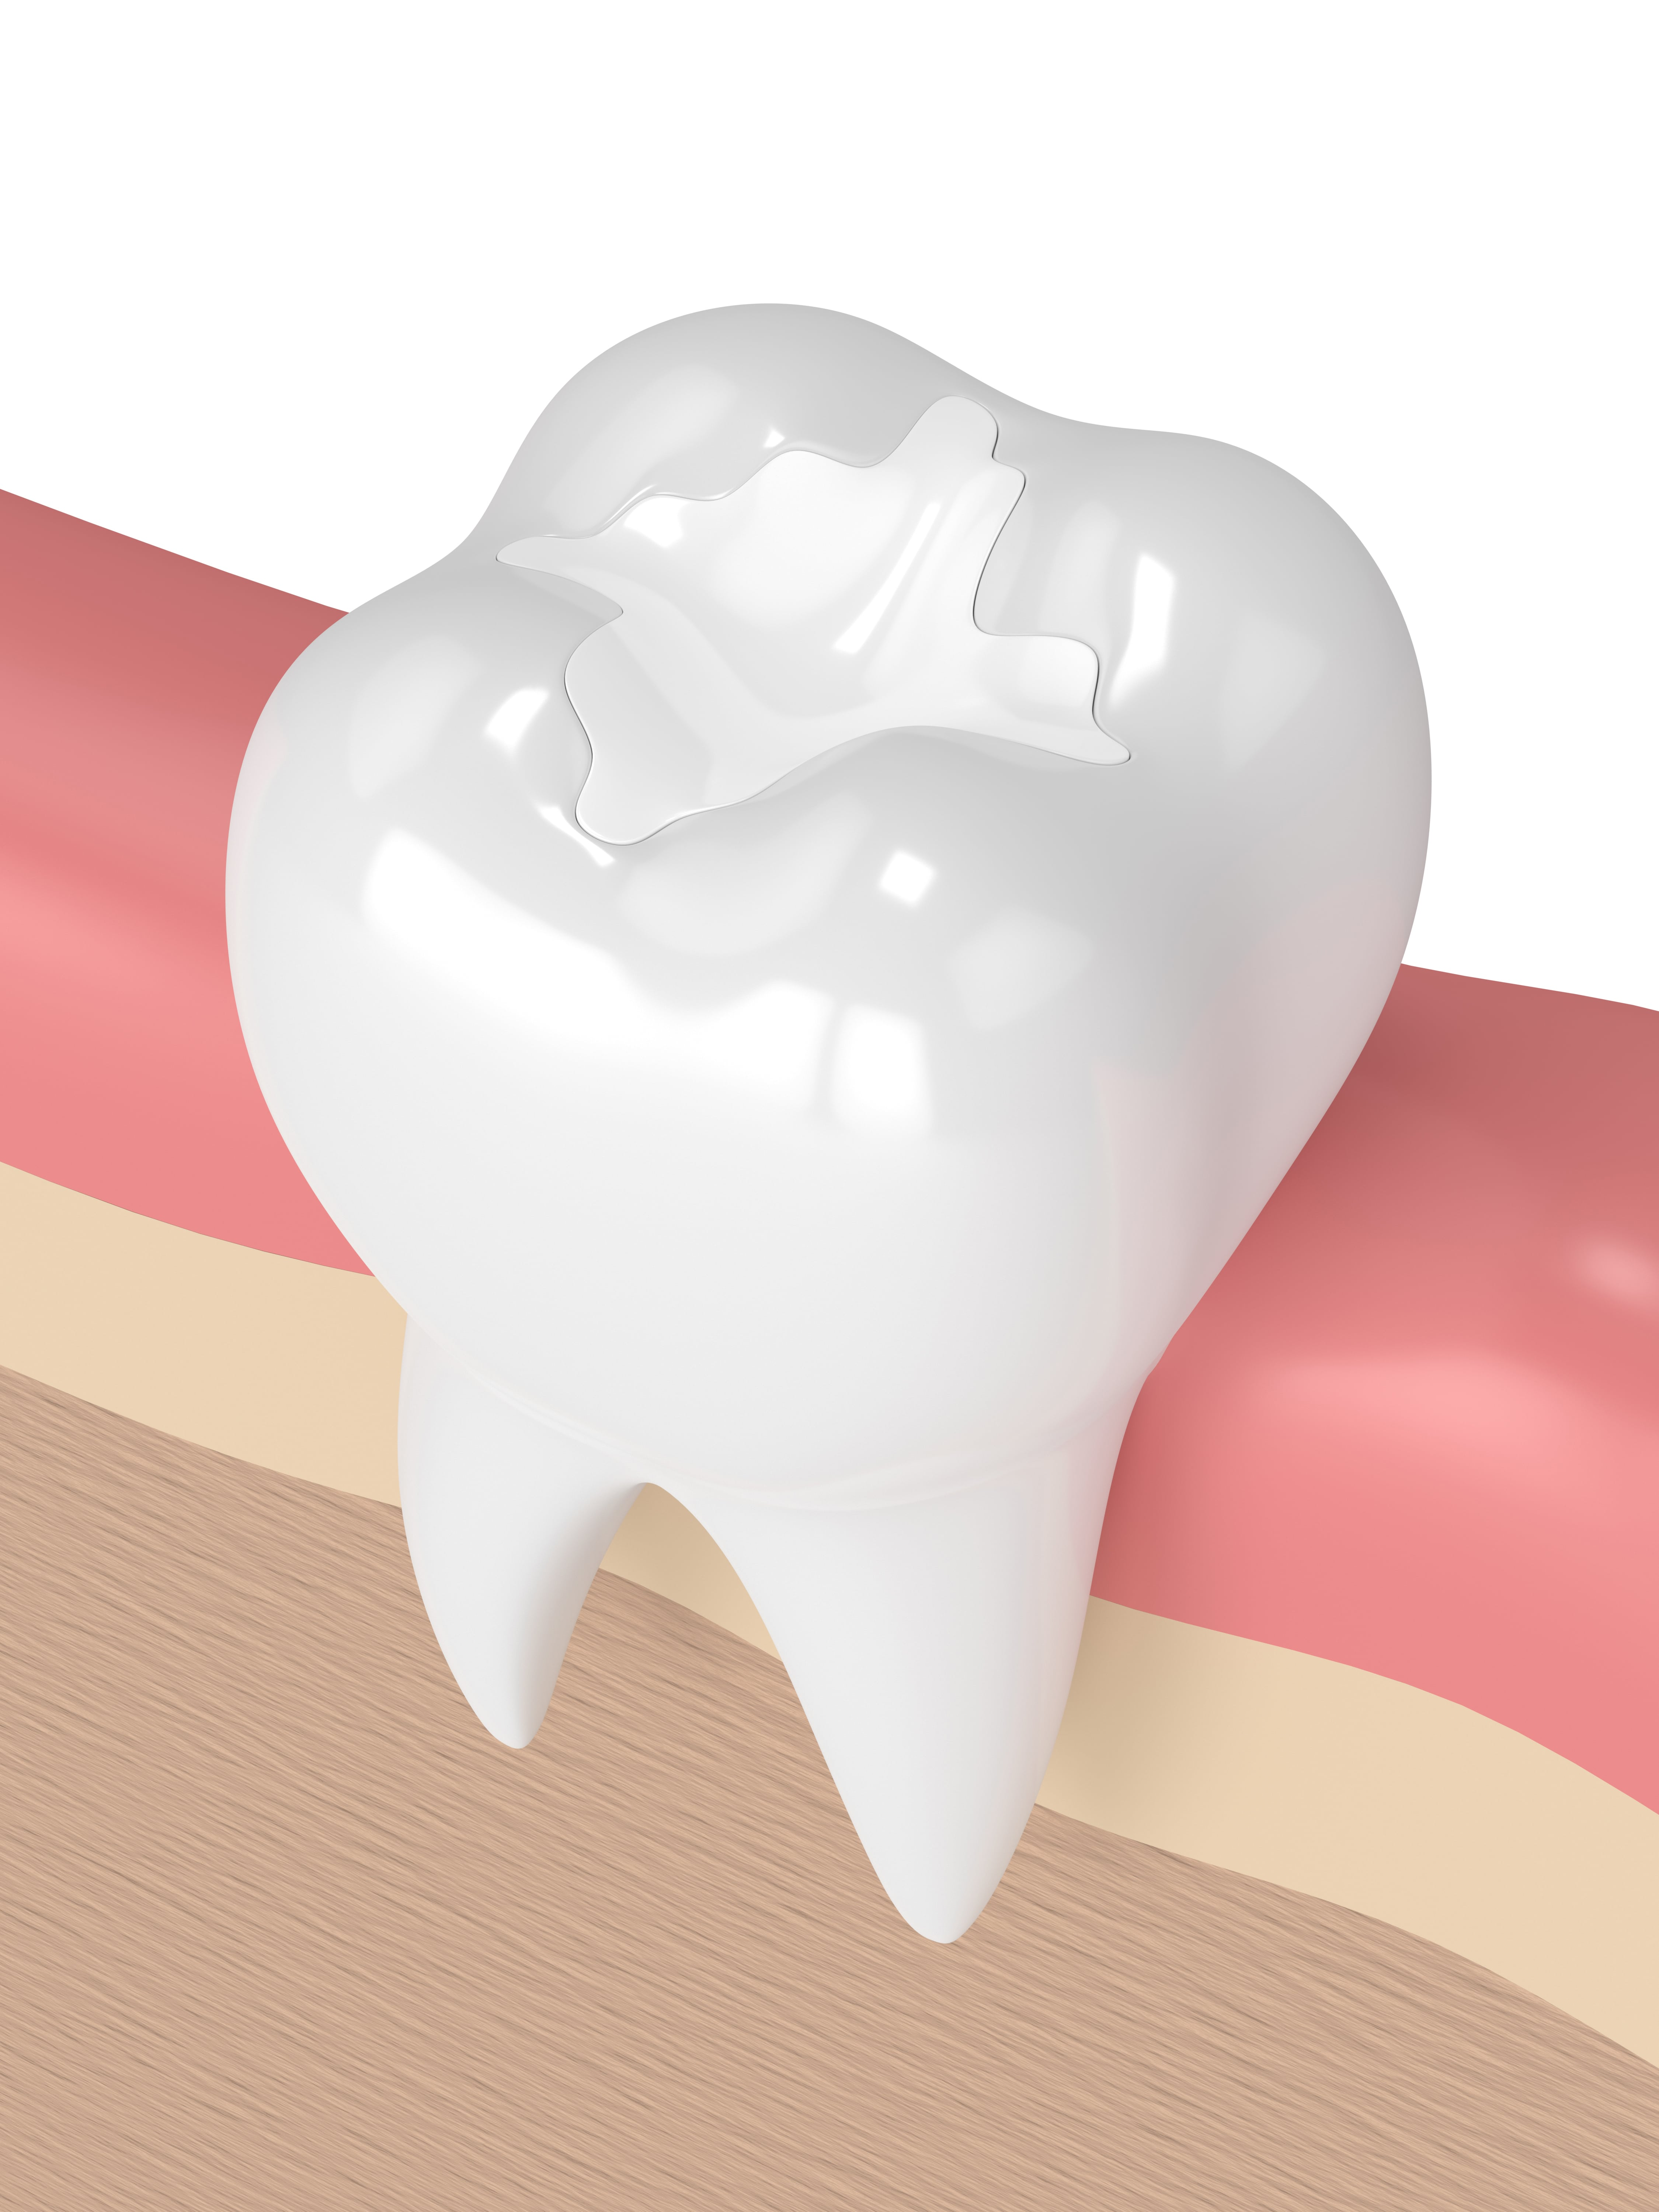 3-D image of a composite filling in a tooth